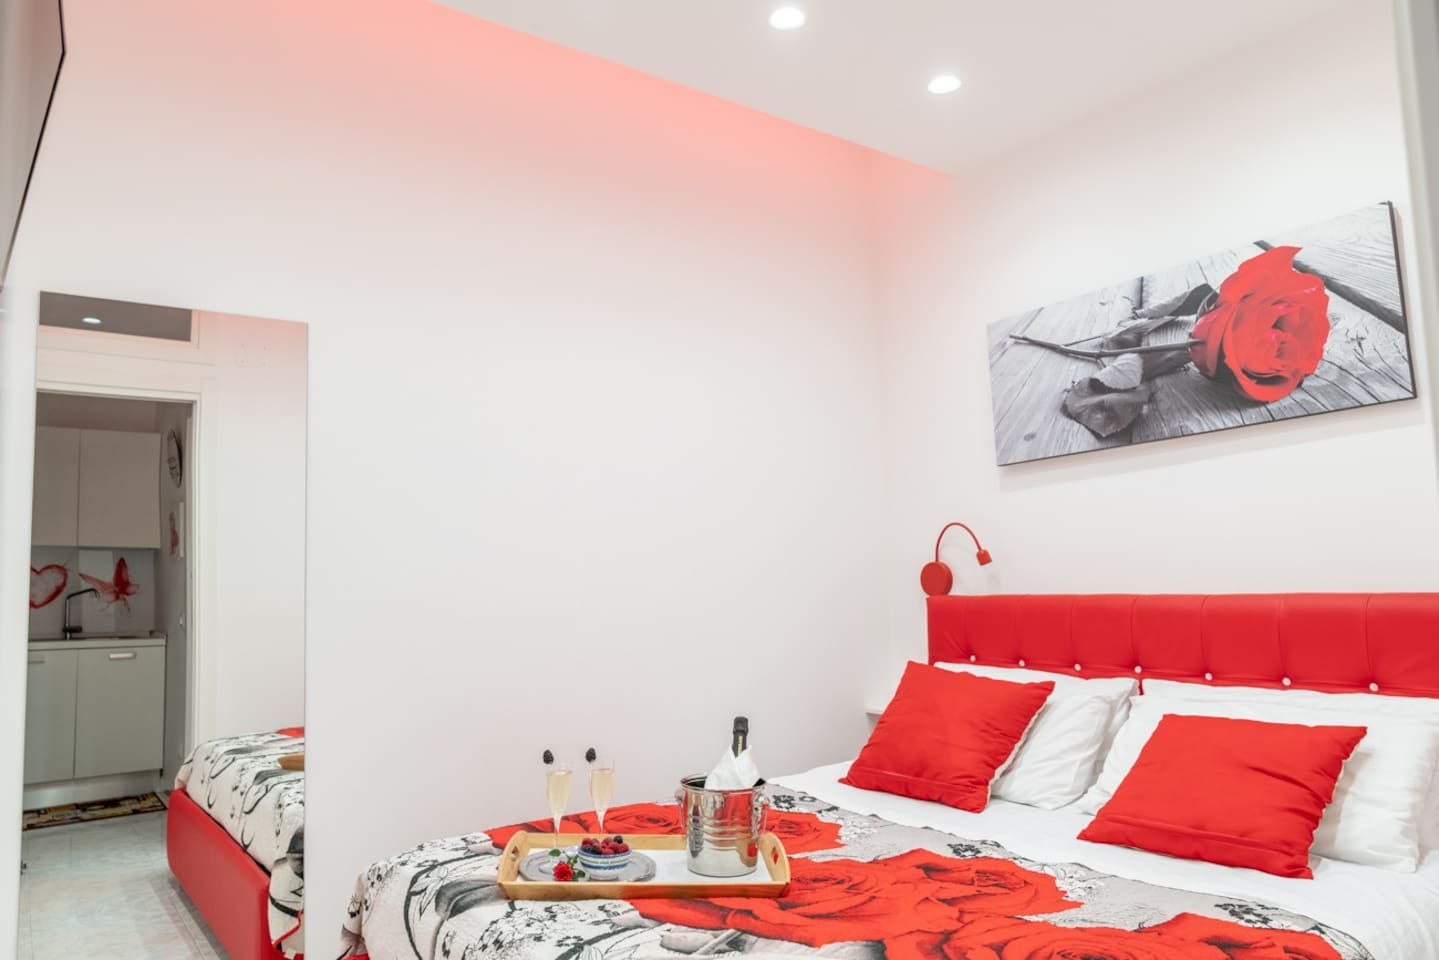 Red Rose Apartment: Enjoy your romantic stay!